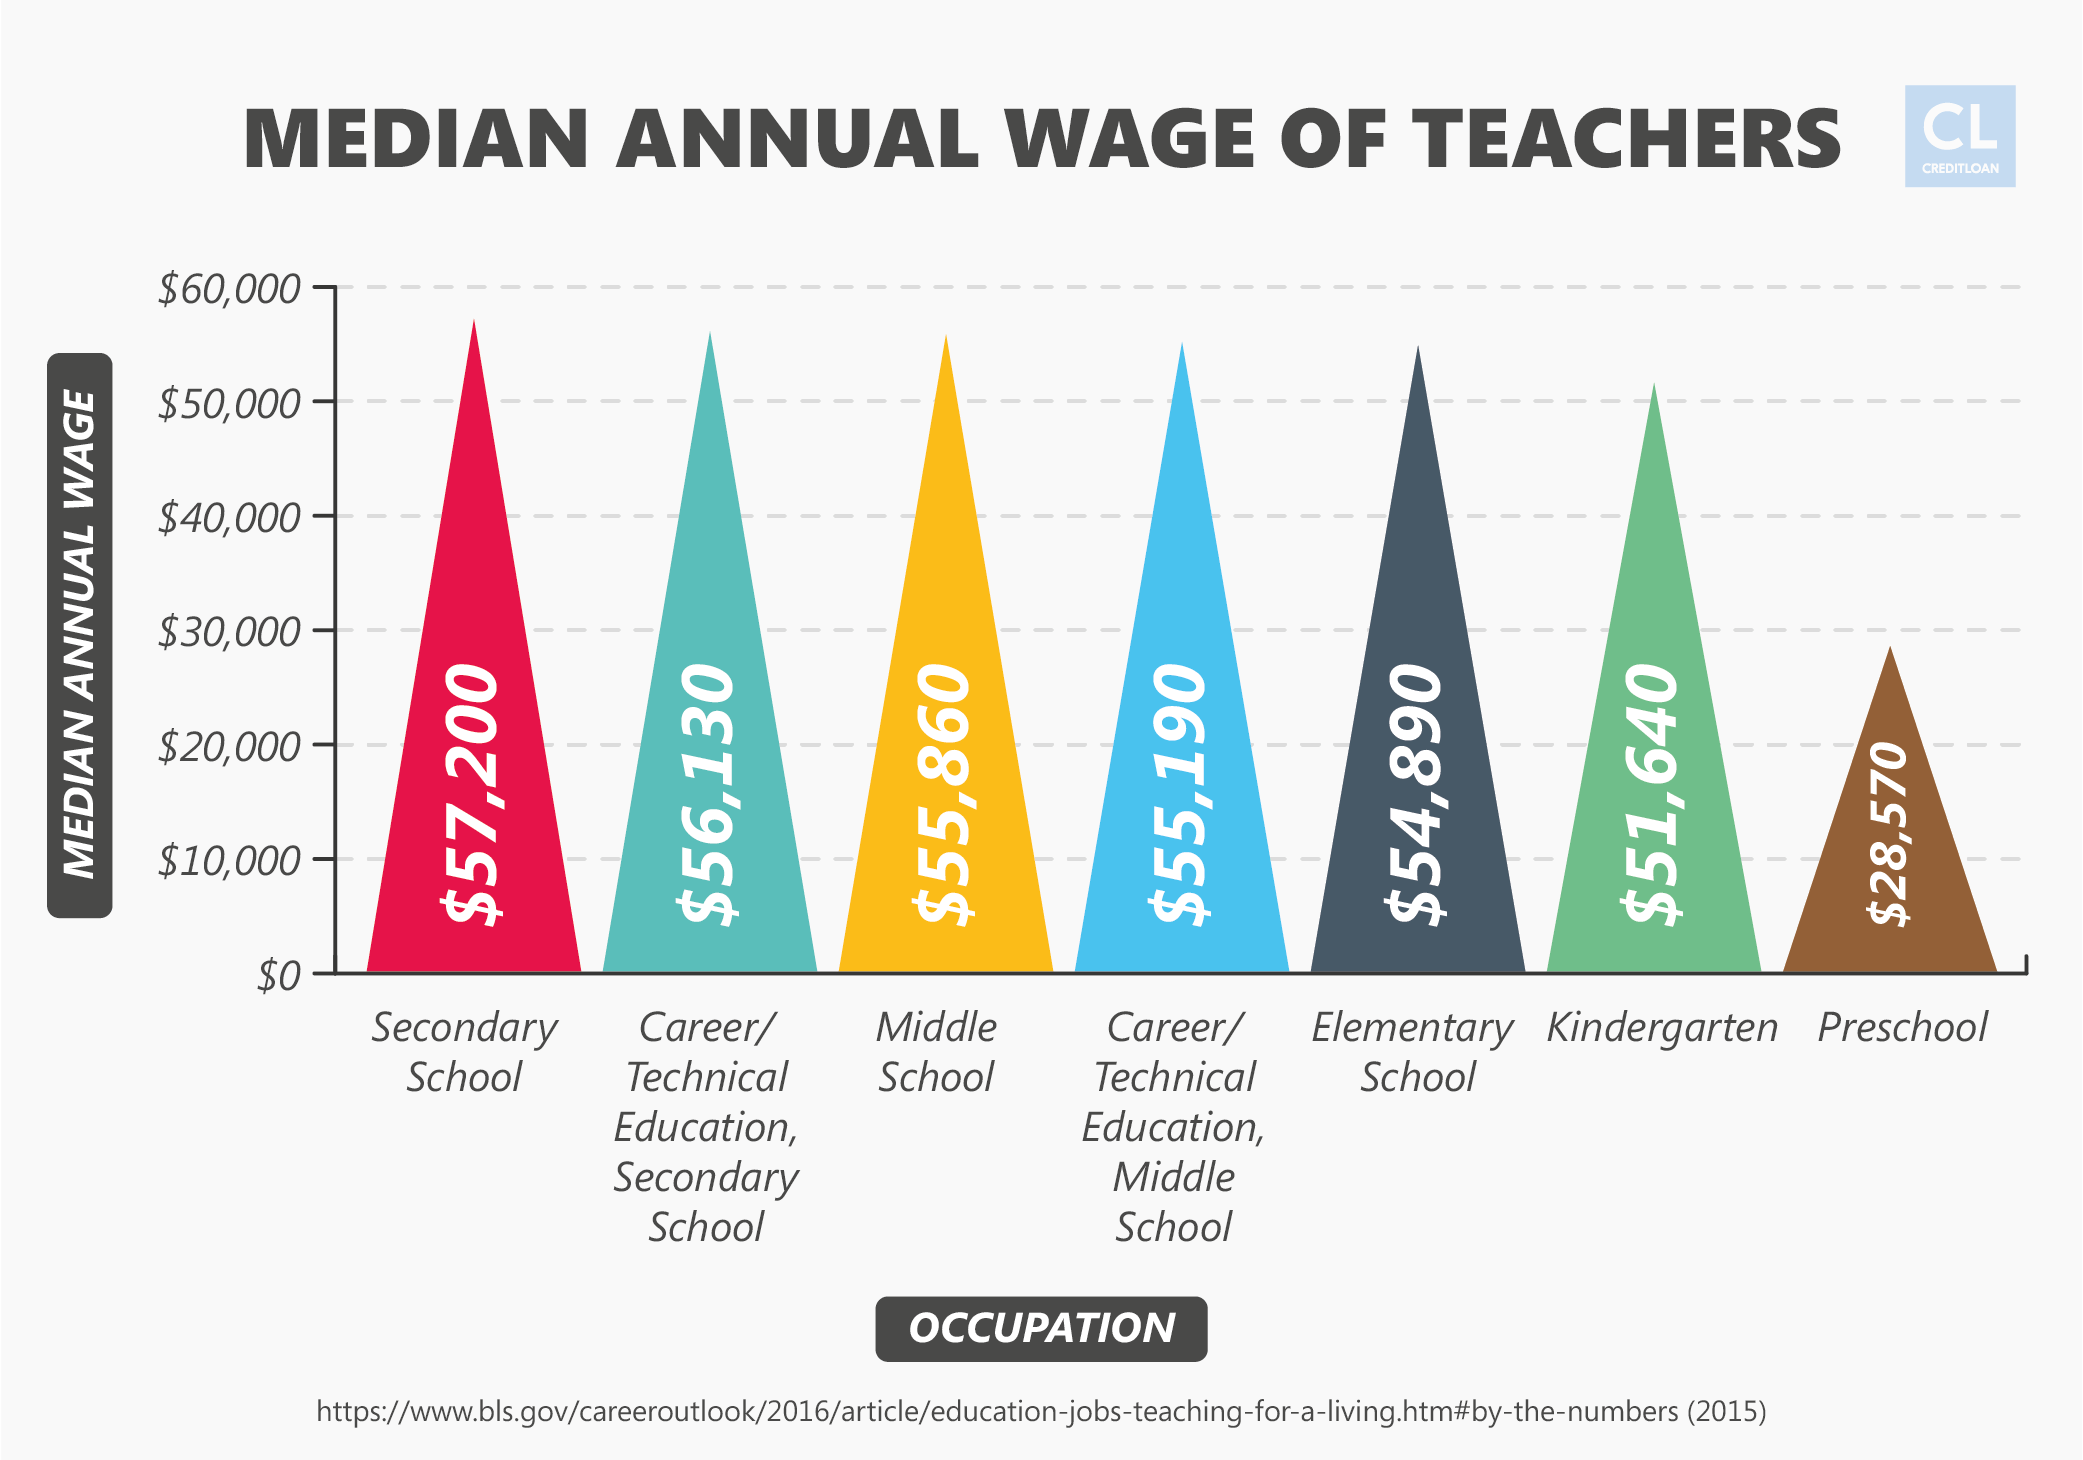 Median Annual Wage of Teachers